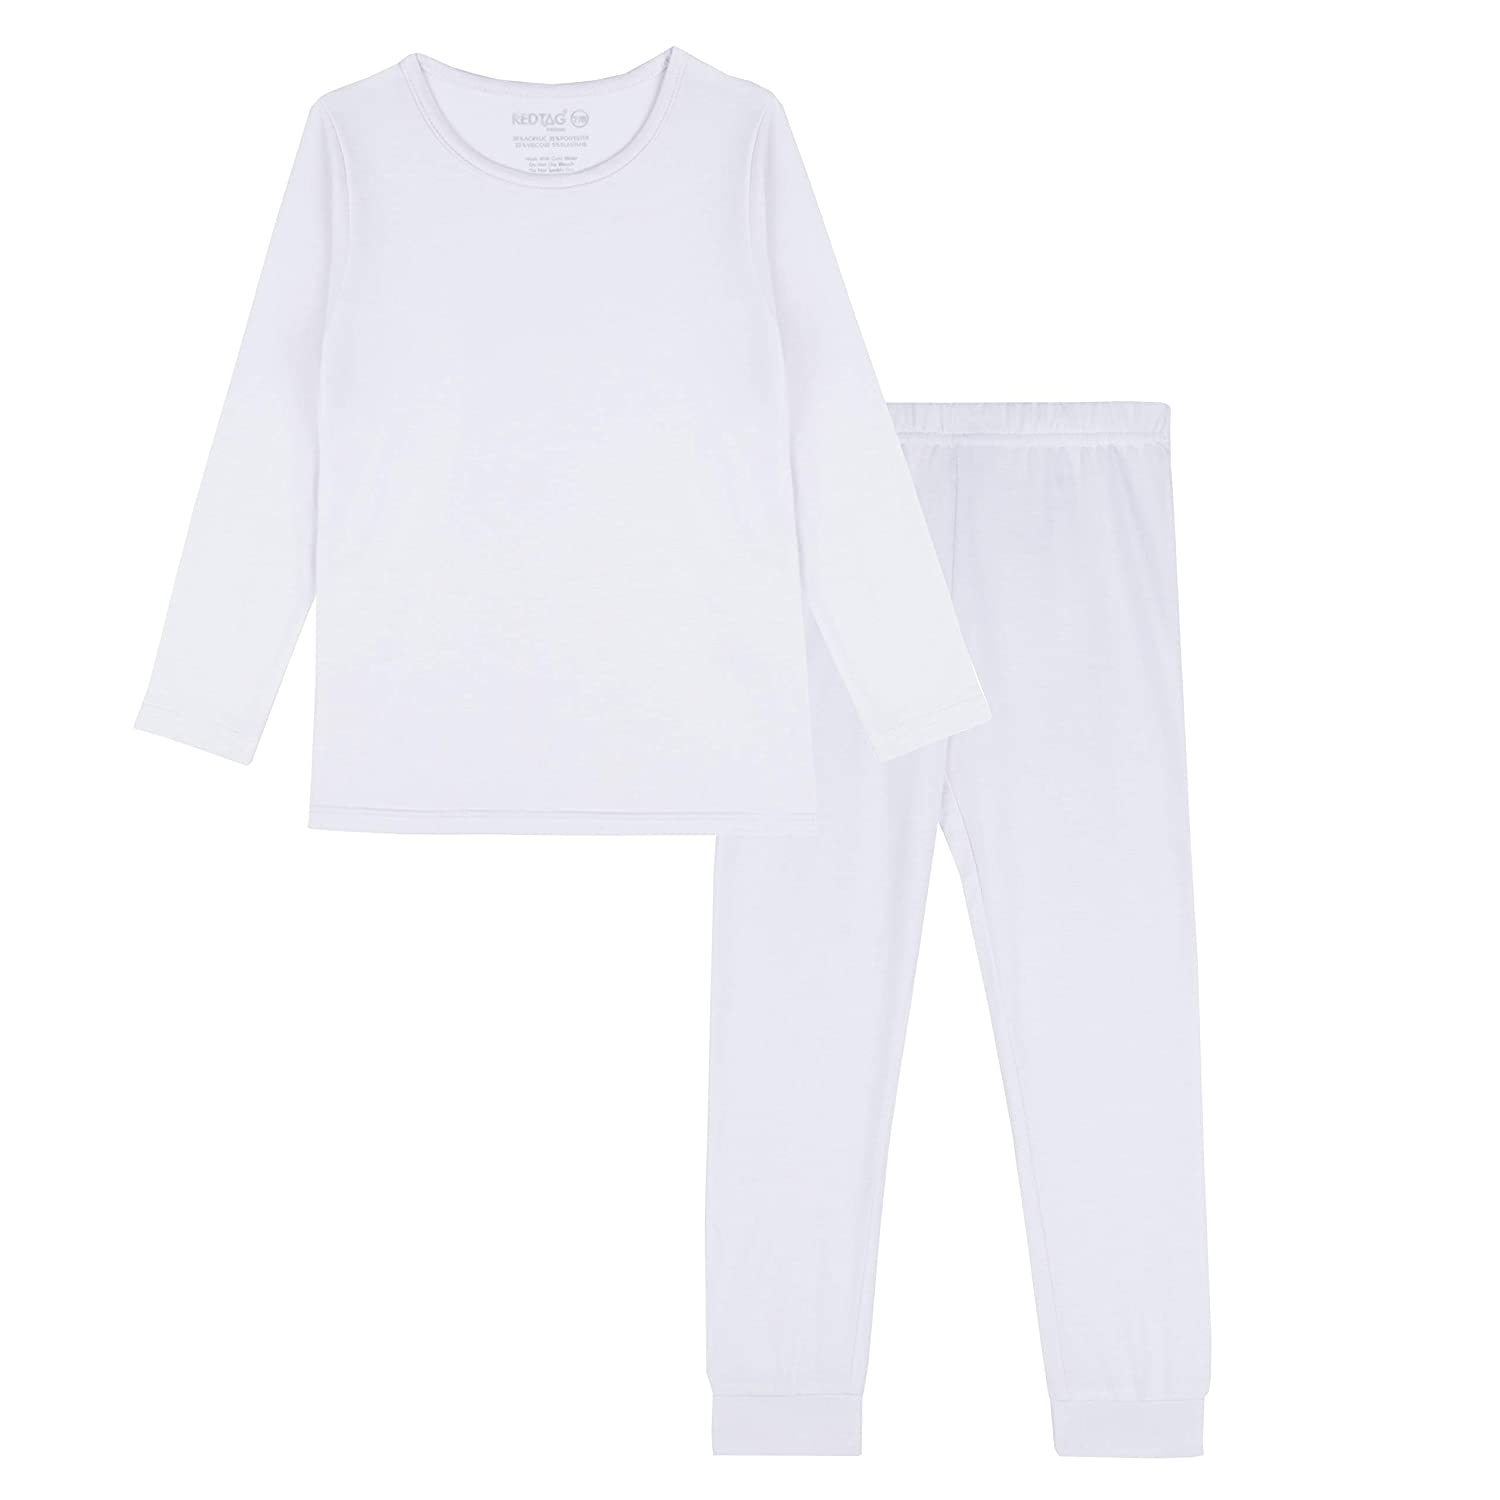 Metzuyan Boys & Girls Thermal Base Layer Top & Leggings Set